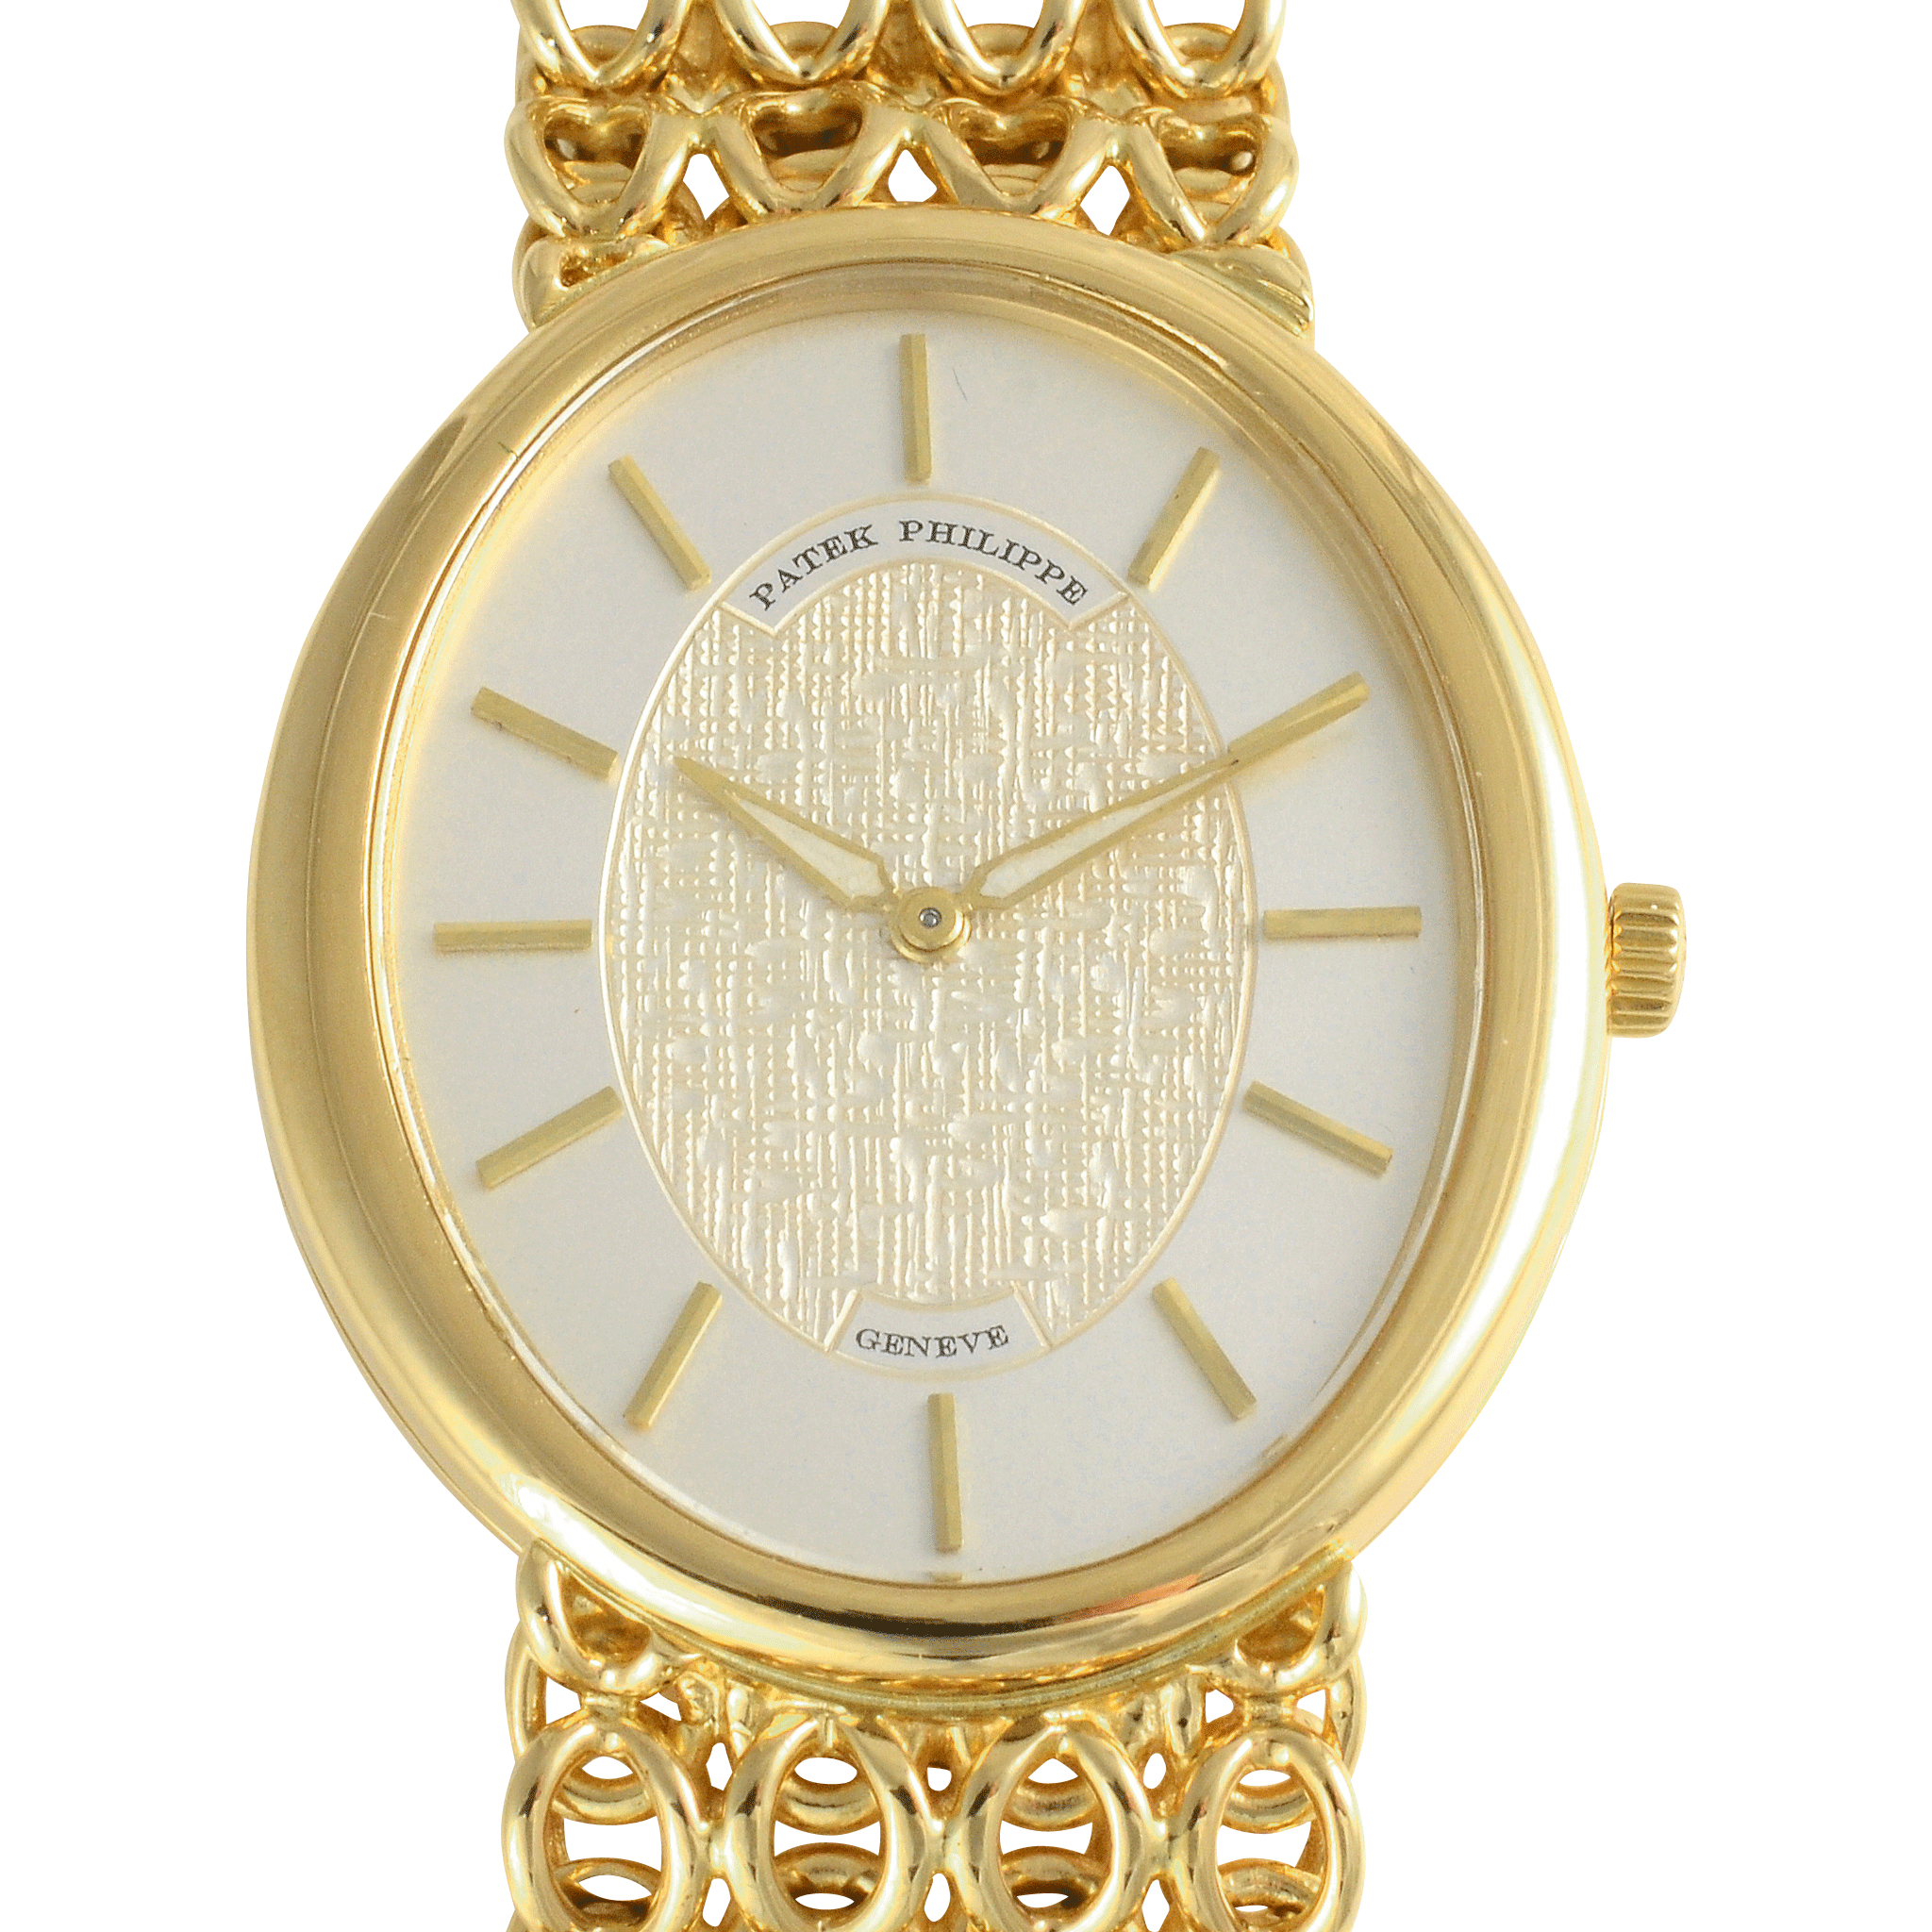 Swiss 18K Yellow Gold Wrist Watch by Patek Philippe